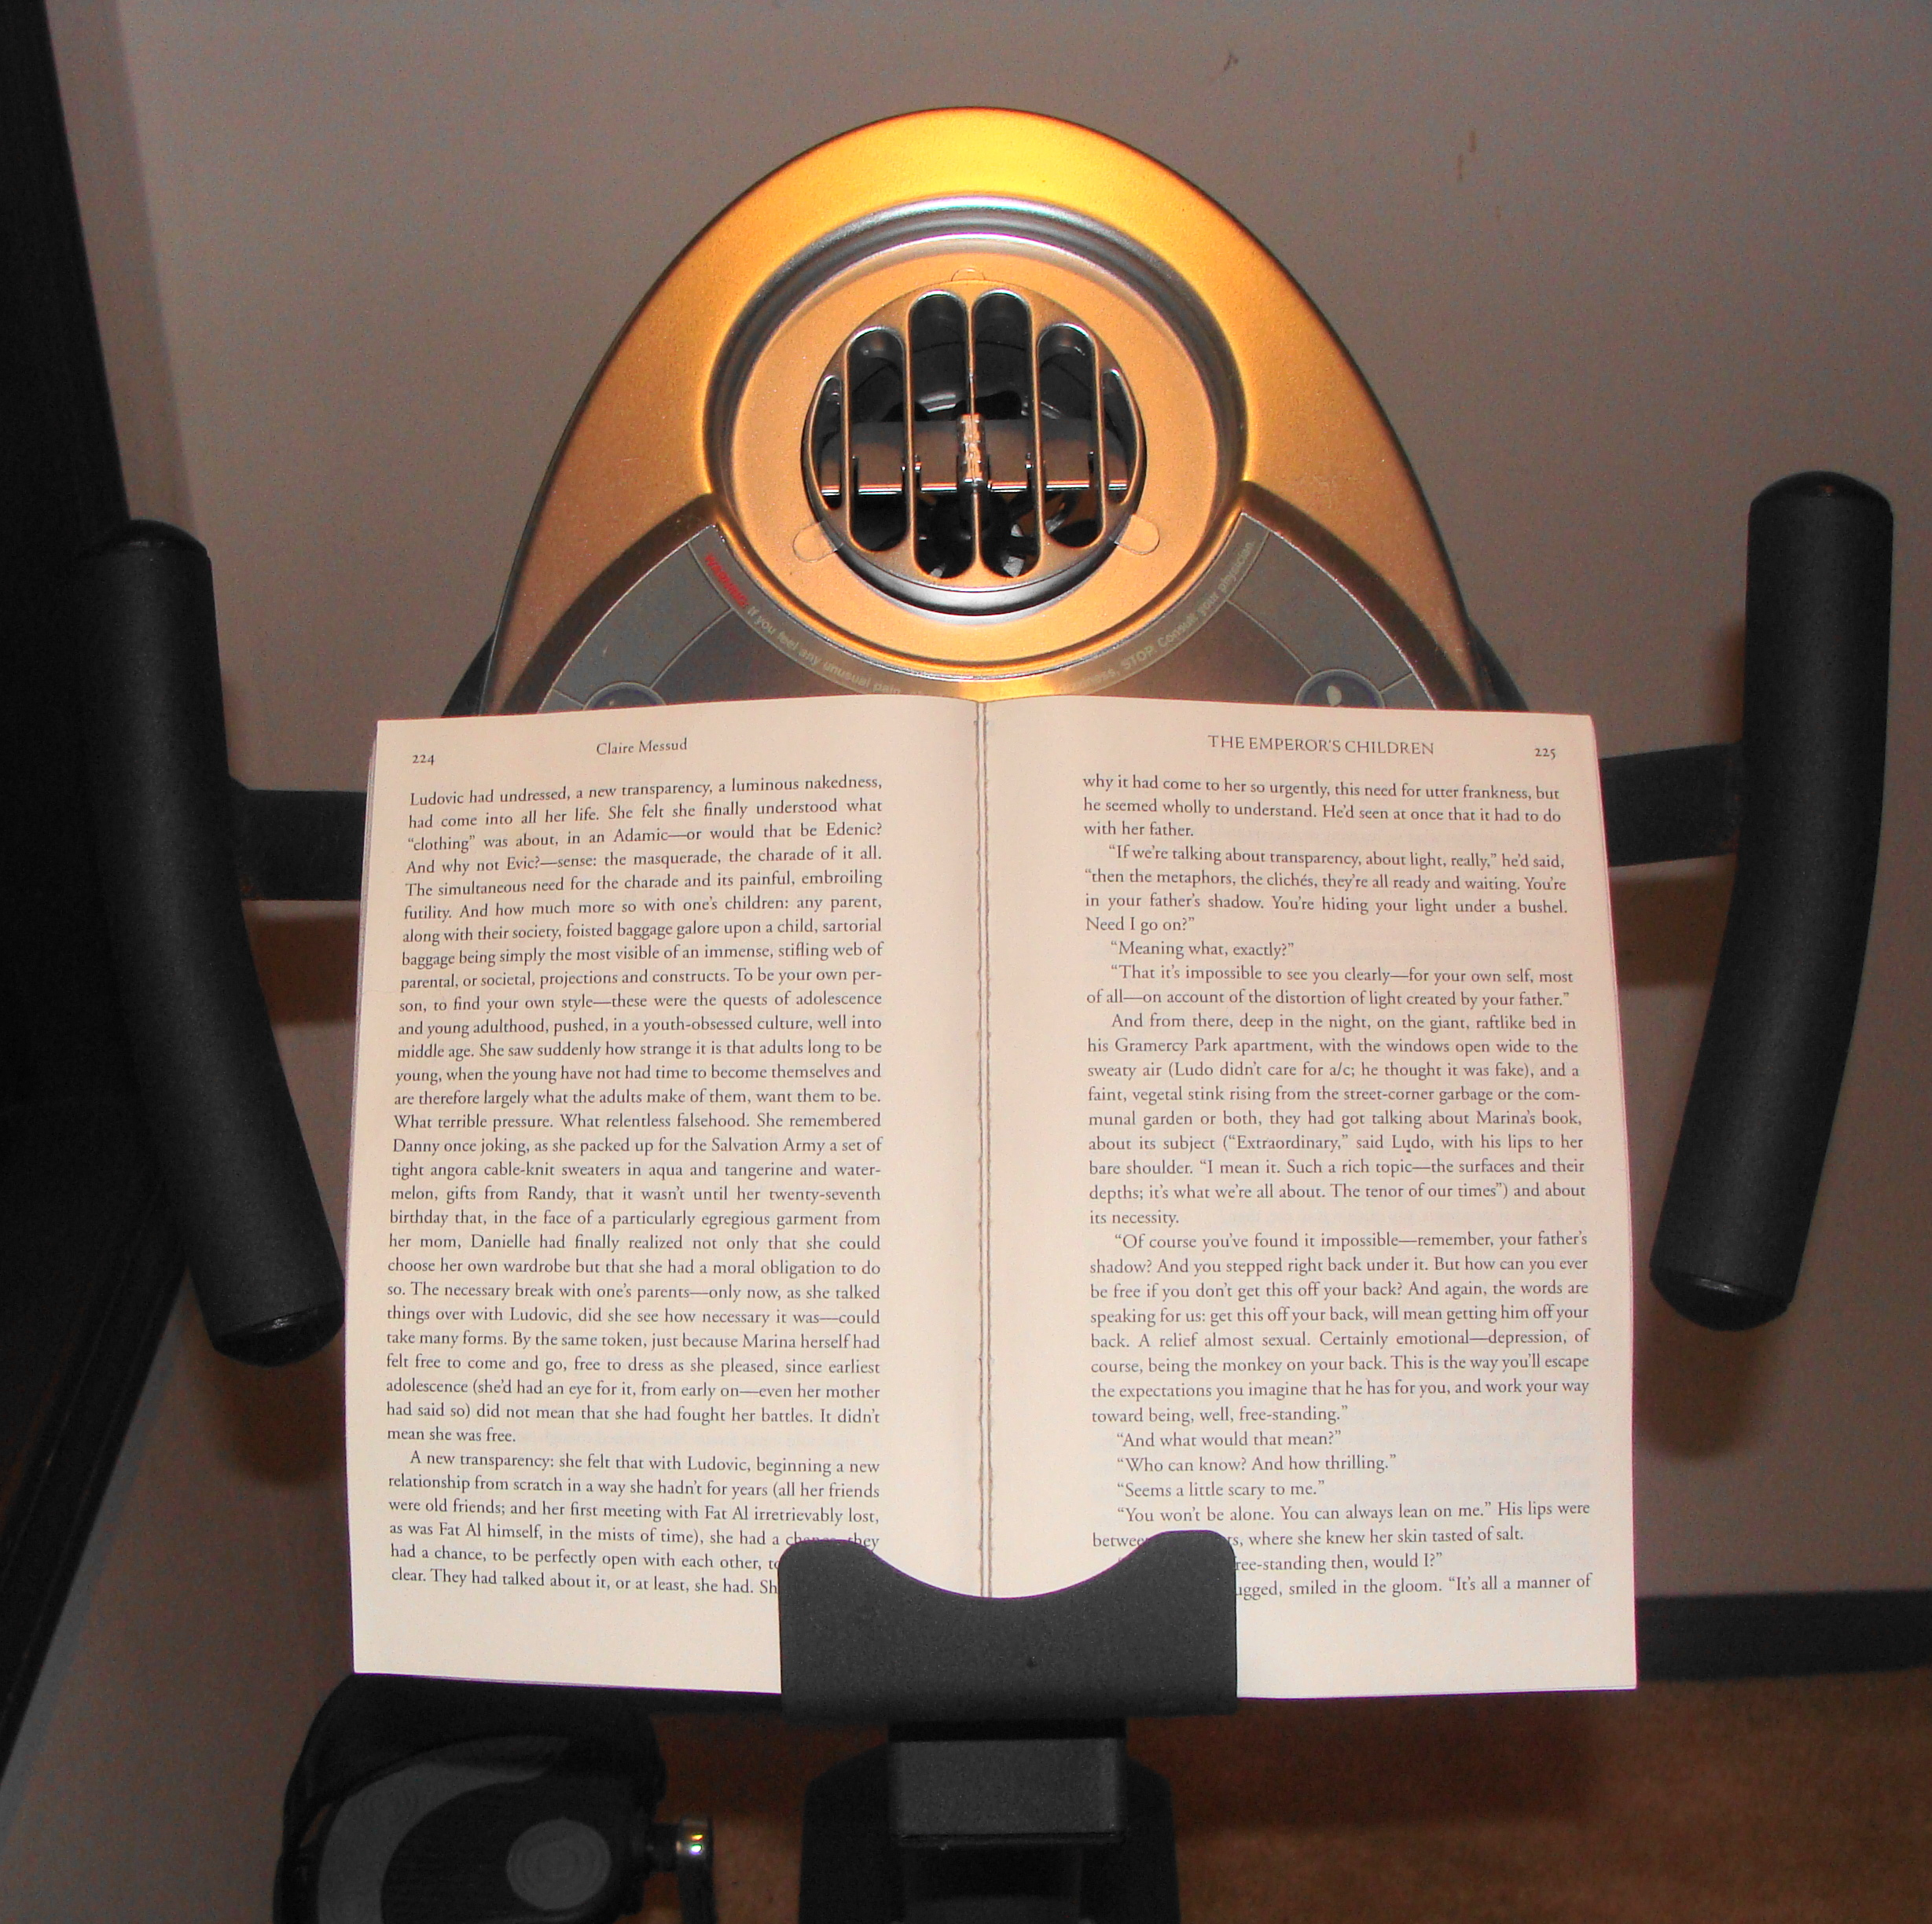 Nifty book holder and fan.